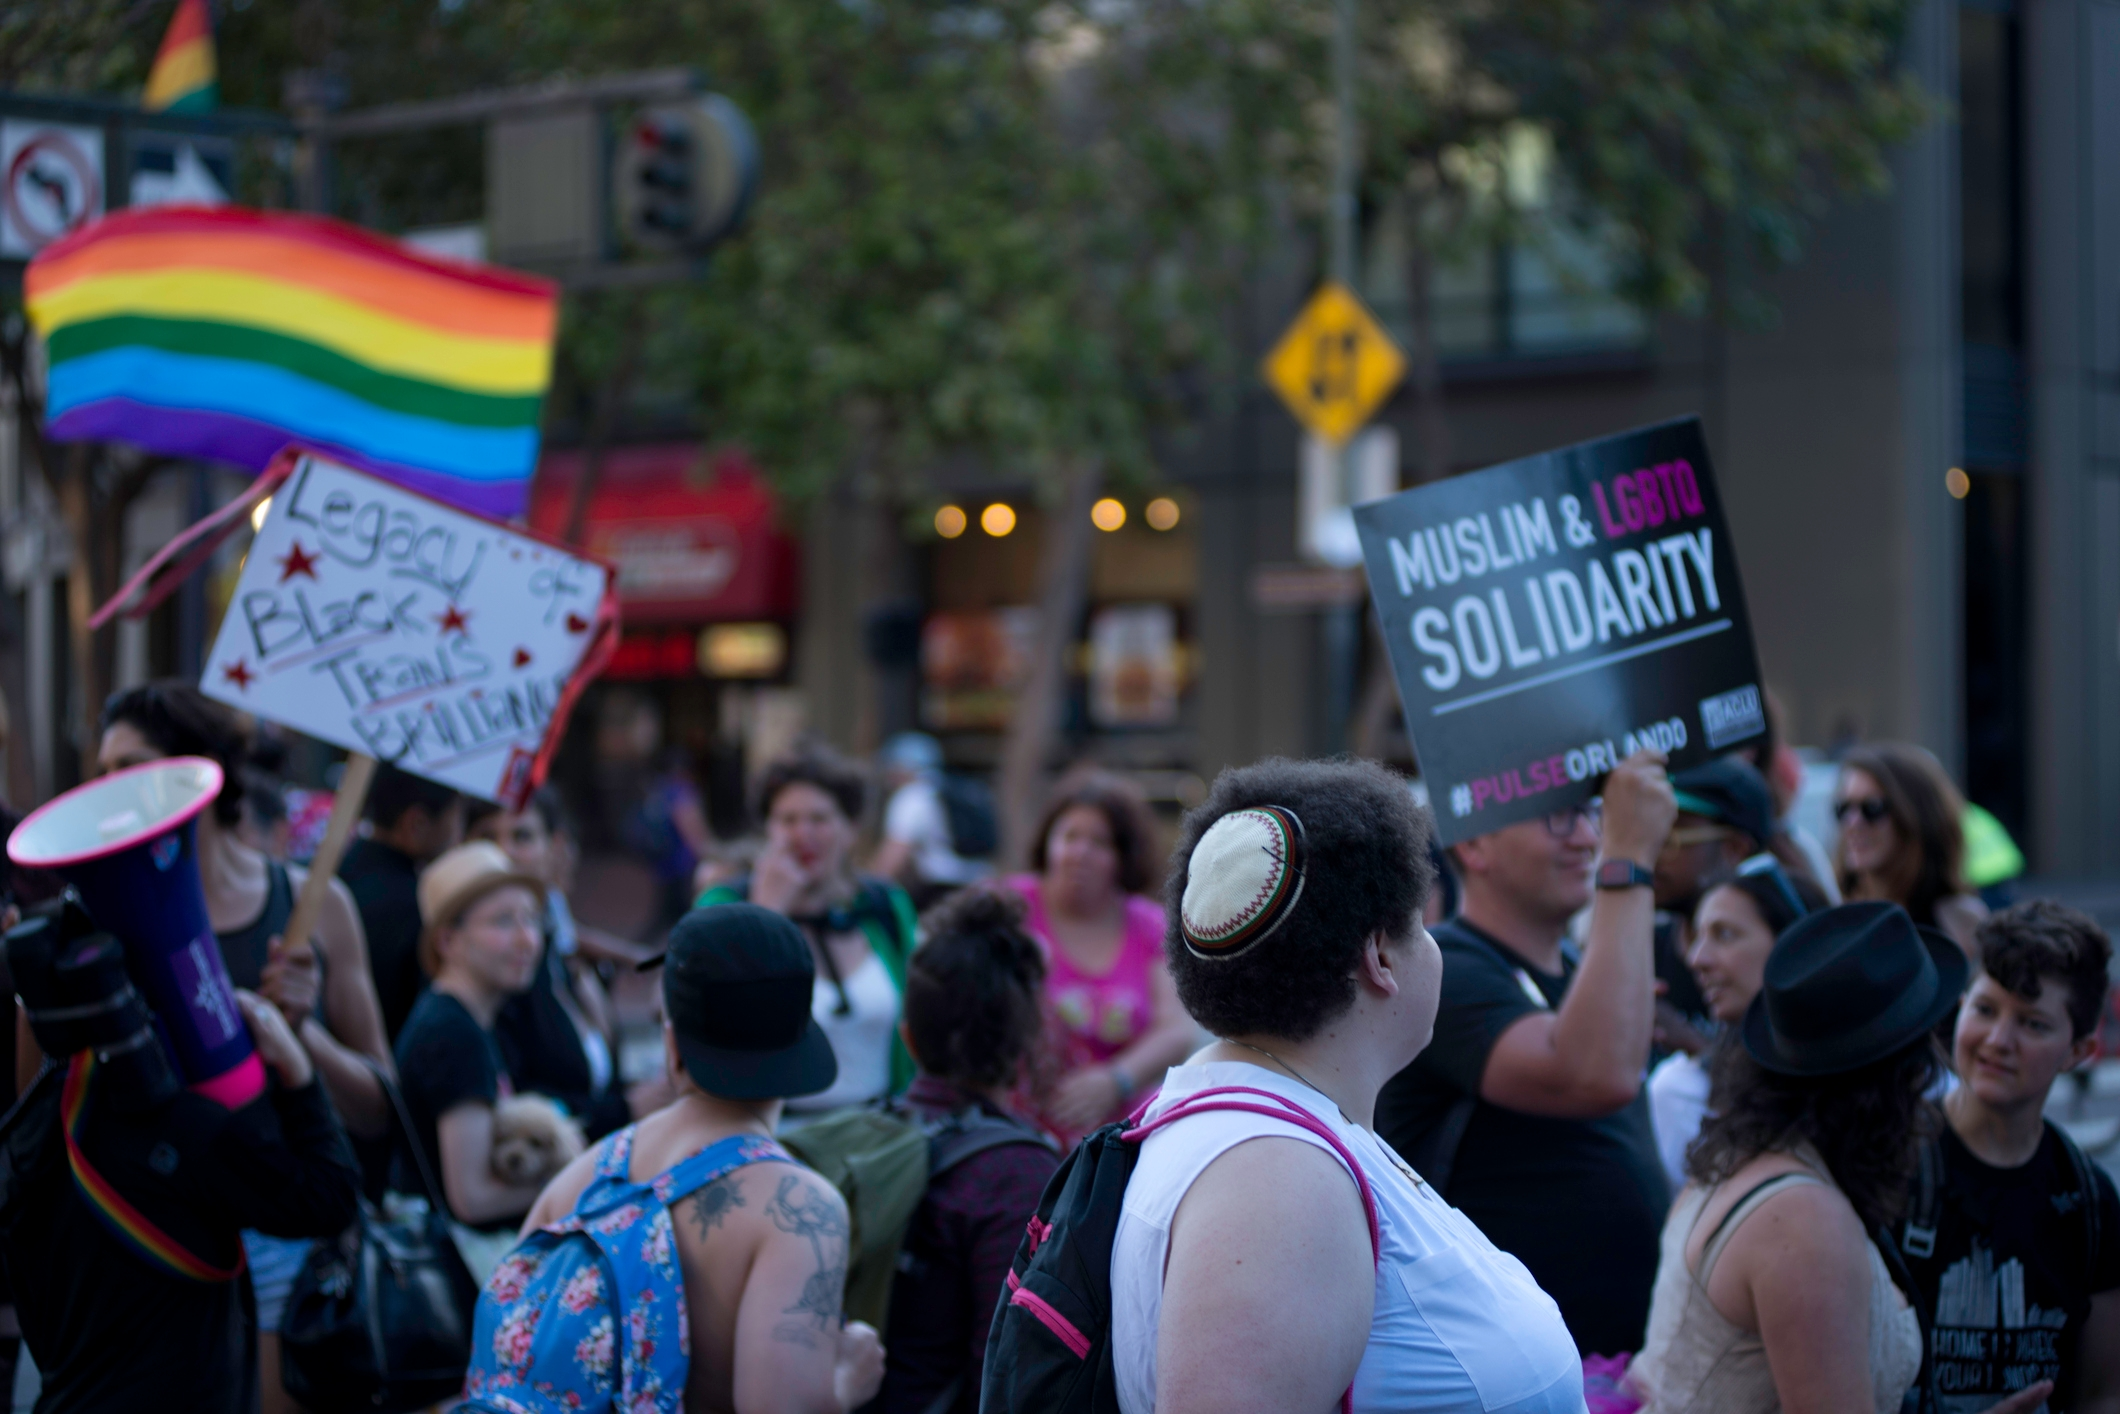 People at the Transmarch in San Francisco, June 2016. (iStock)